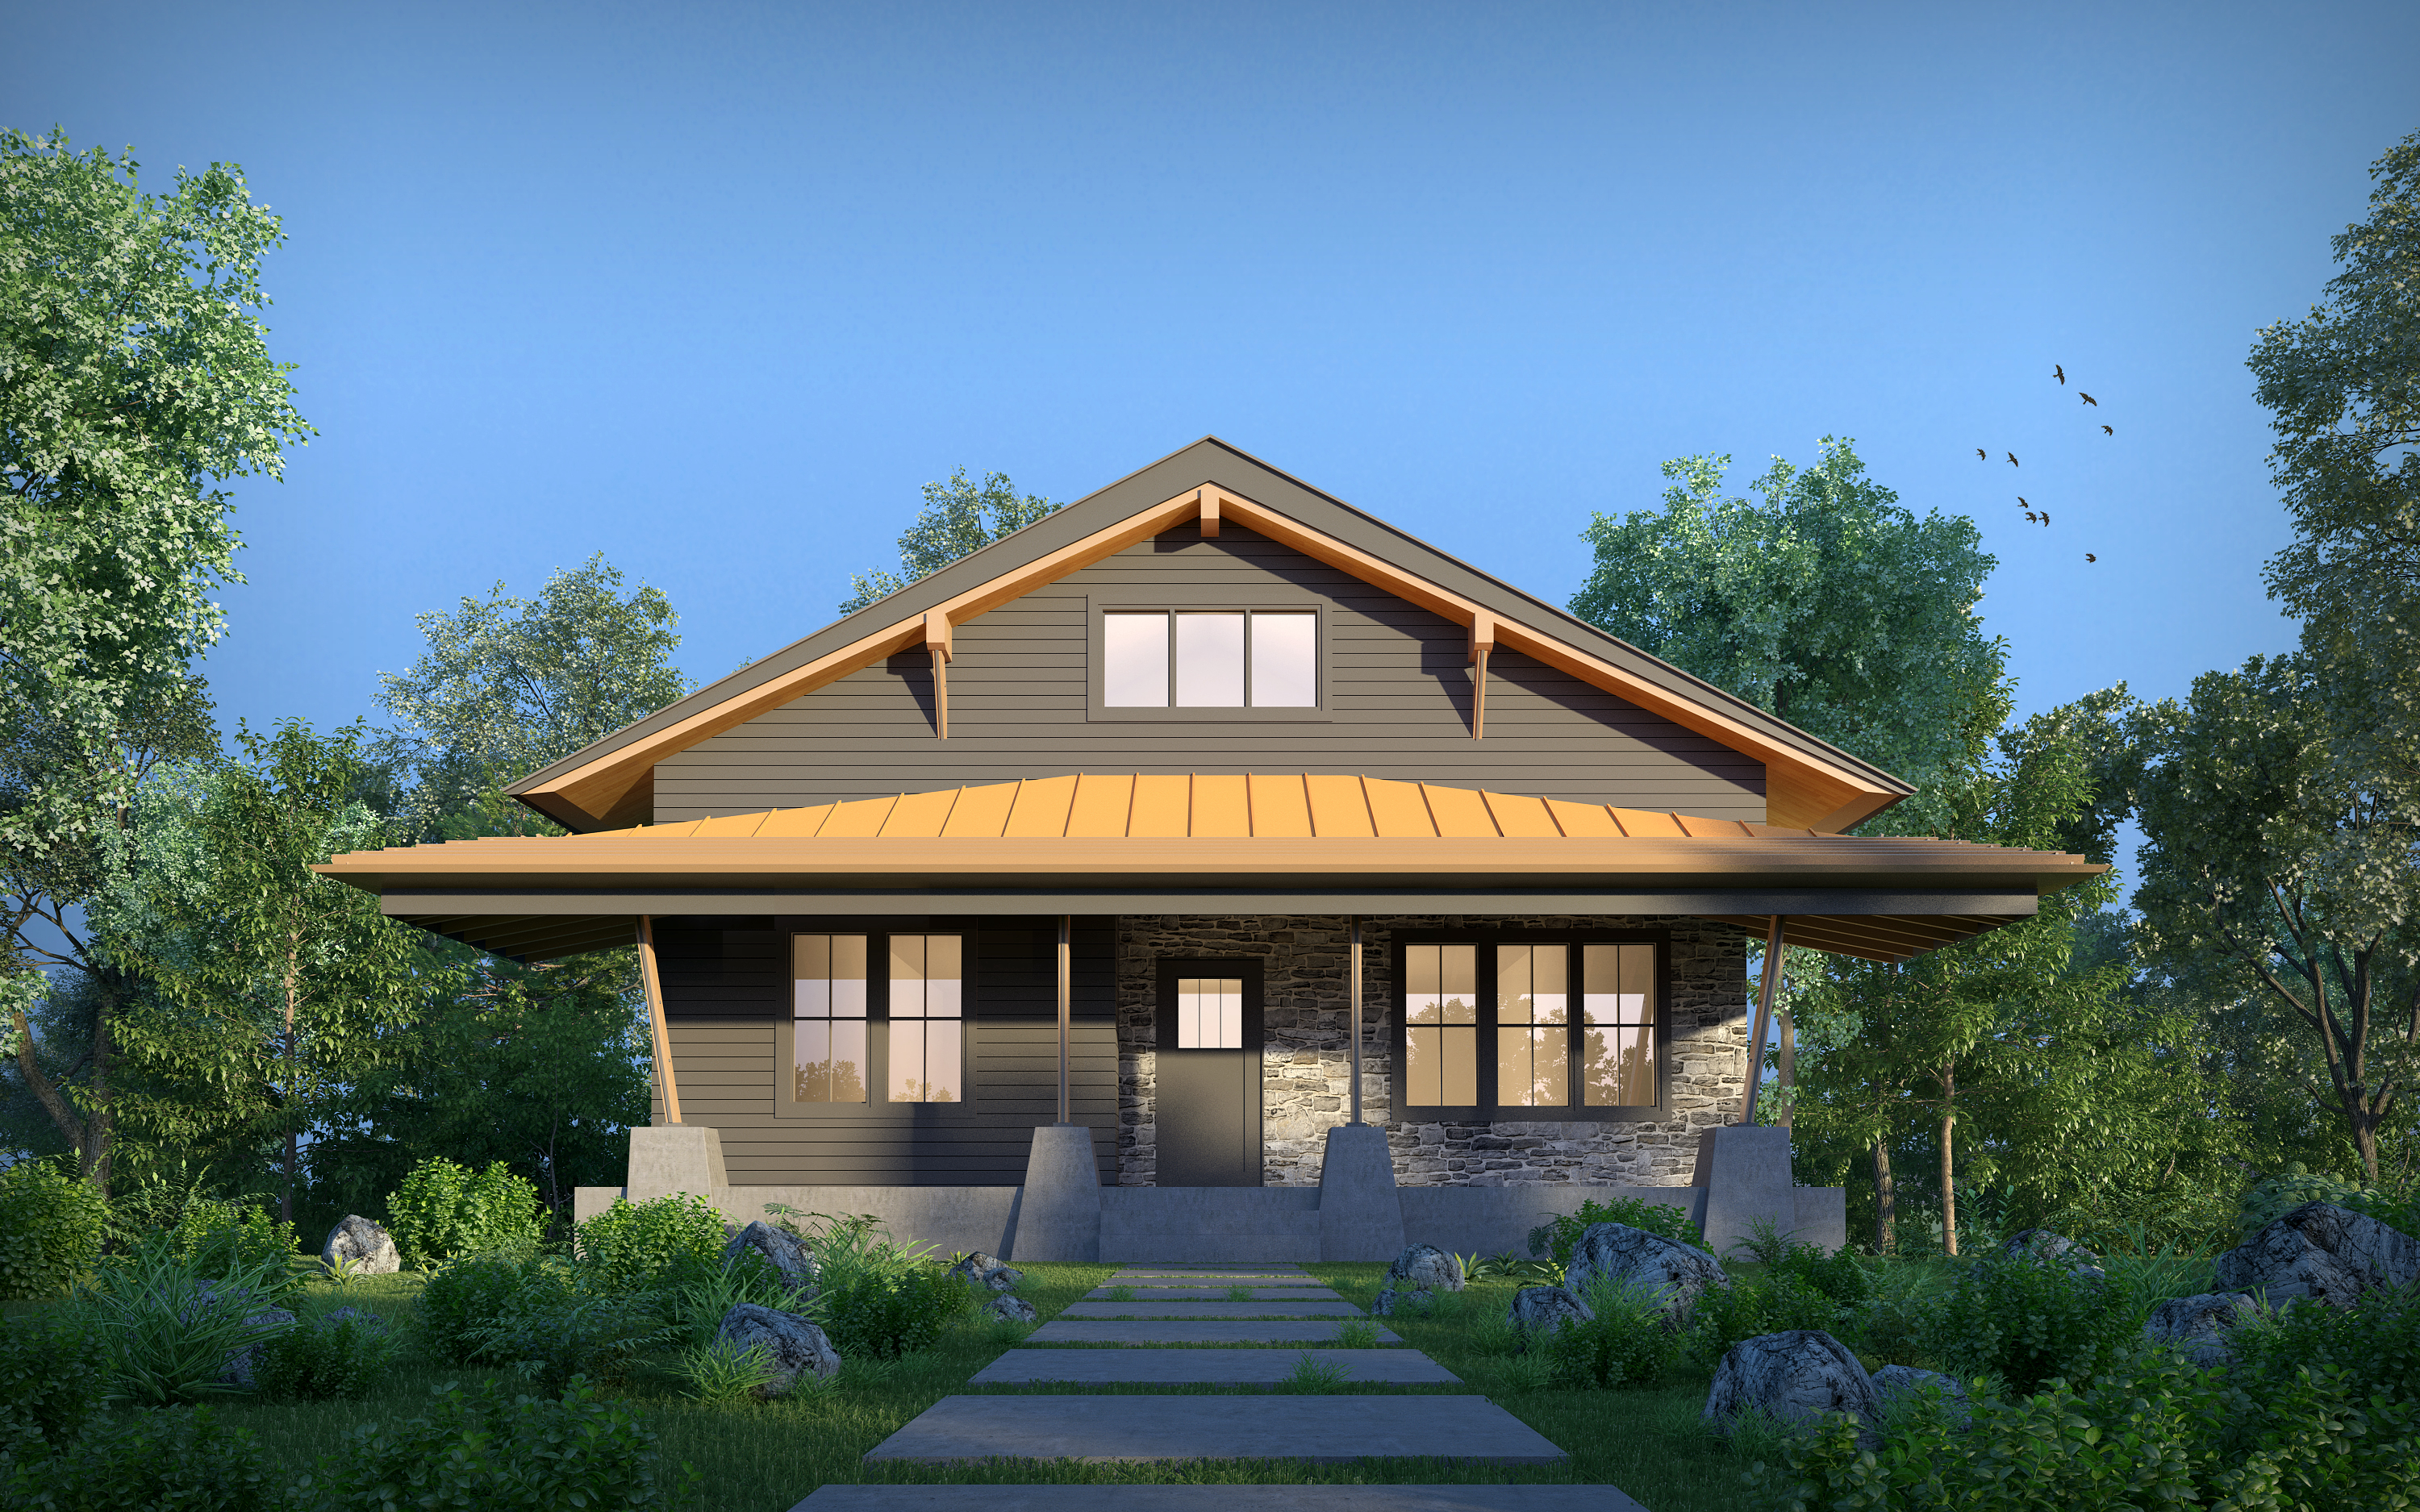 Design Build Renovation GoodHaus Contemporary BungalowNew Construction, Design, Build, Architecture,